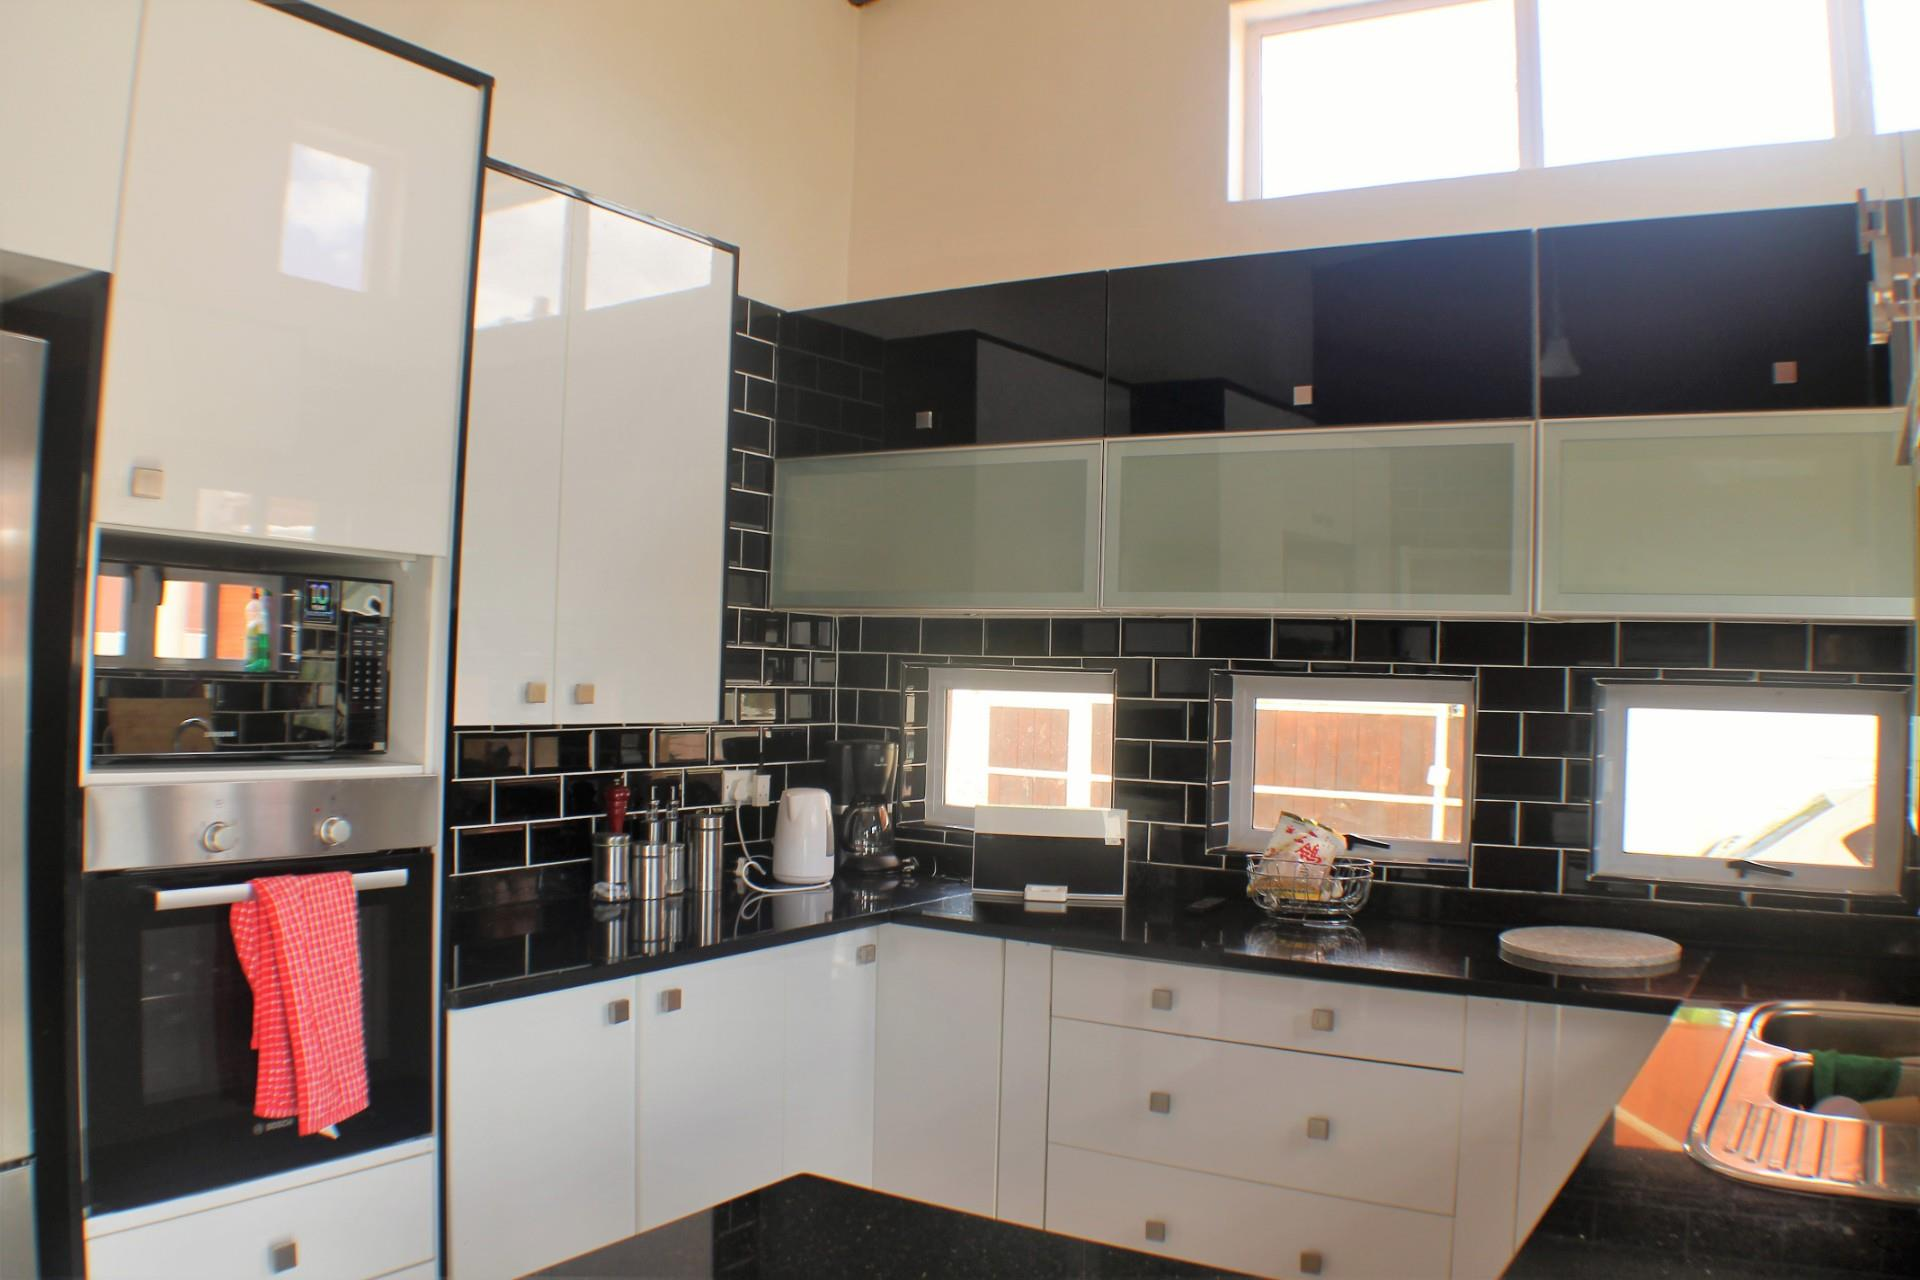 3 Bedroom House For Sale in Block 8